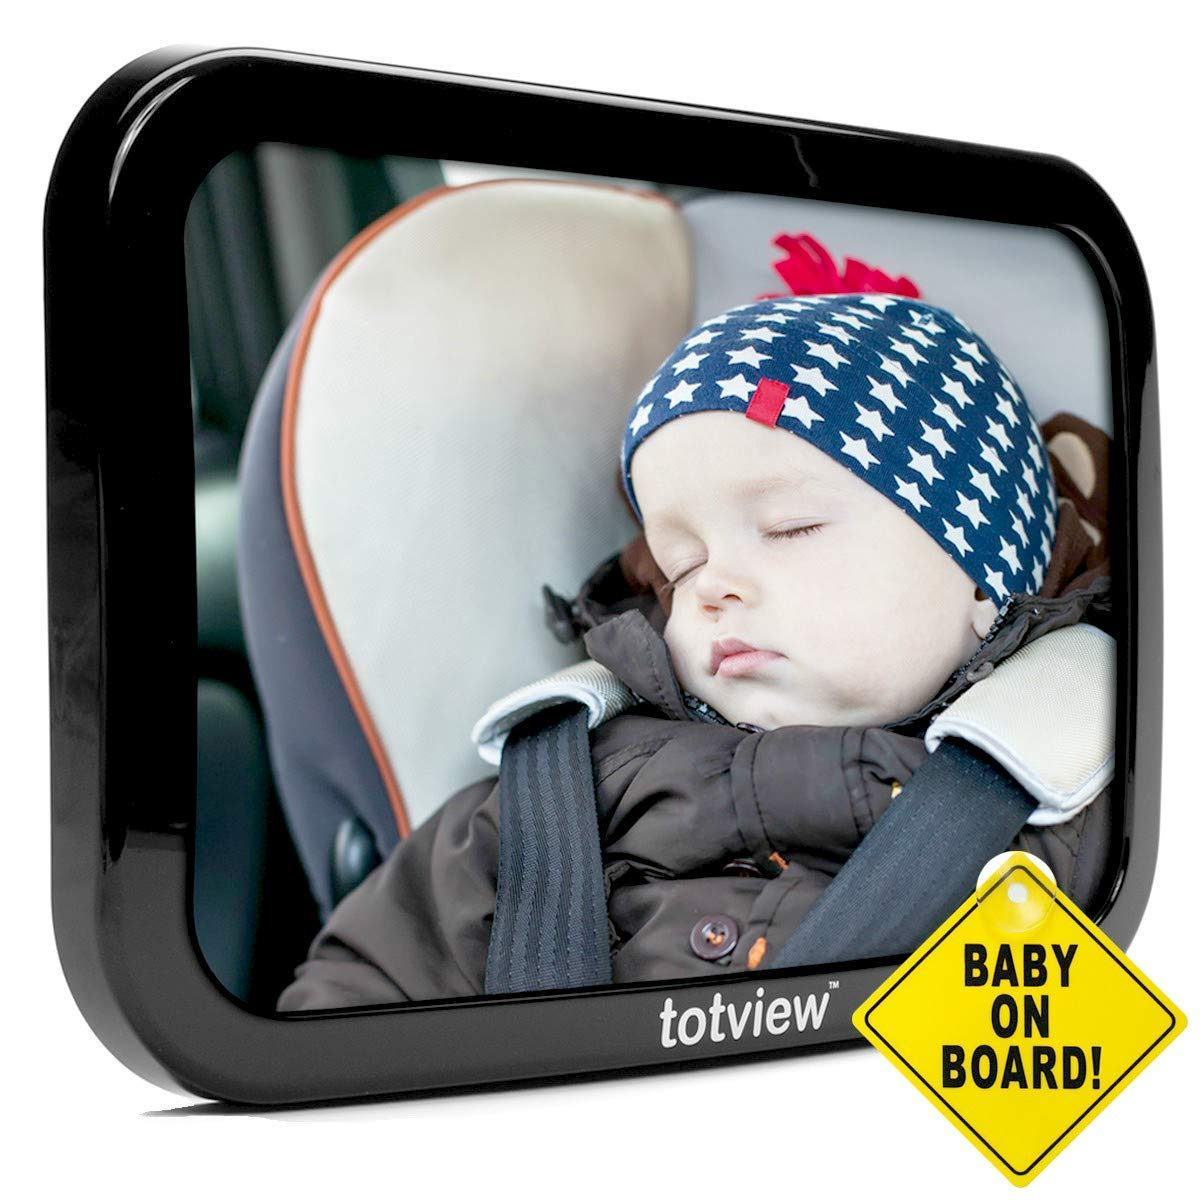 Baby Car Mirror - for Rear Facing Car Seats - Large, Secure Fit Baby Mirror - Easily View Infant in Backseat - Best Newborn Baby Accessory for Travel - Free Baby-On-Board Sign by GroCreations